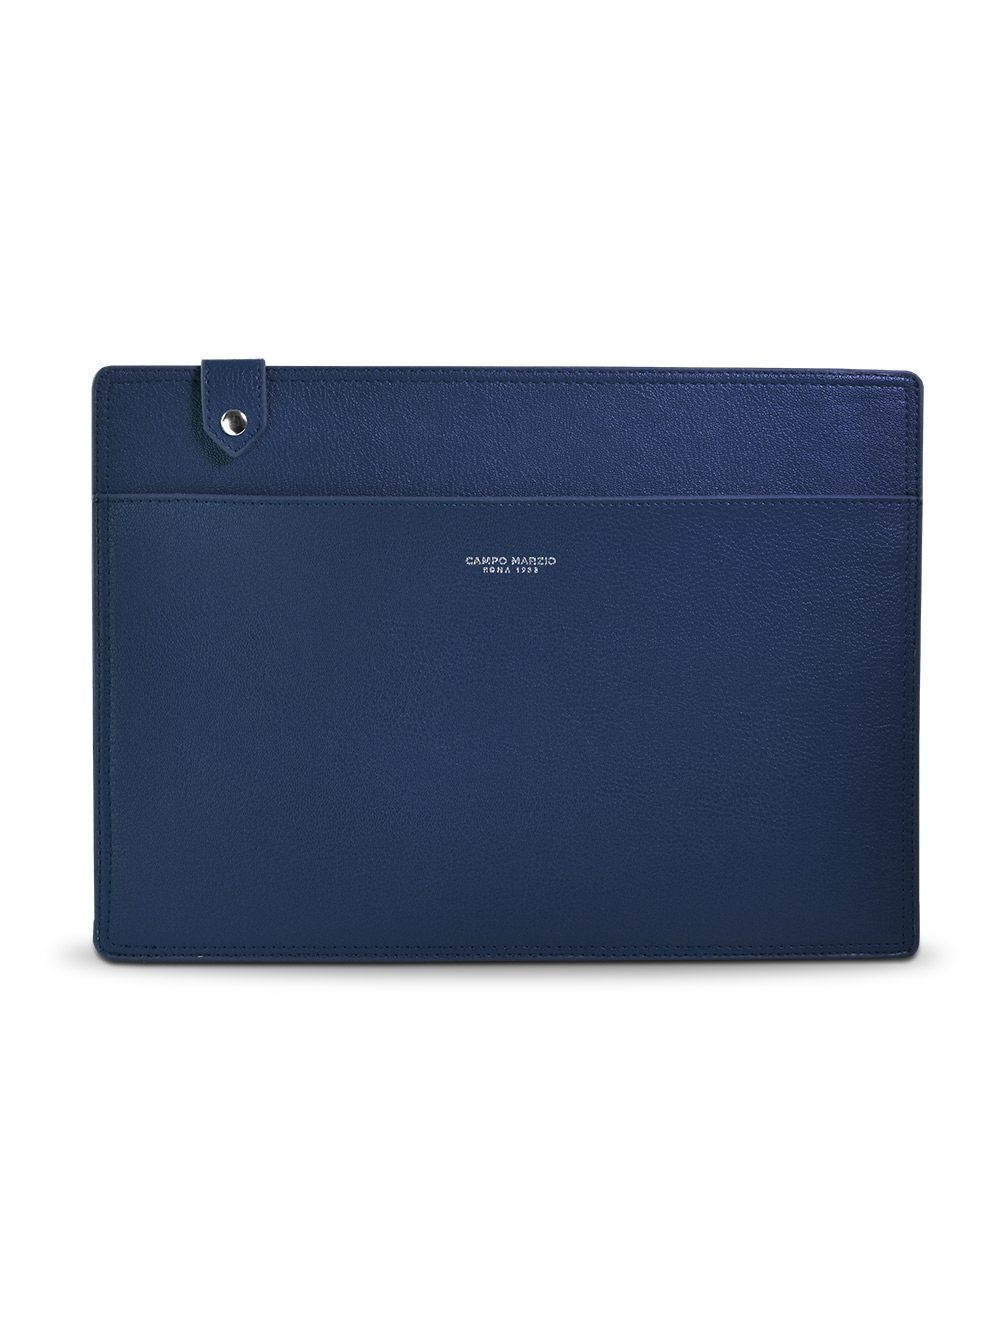 Japanese Document Holder Double Color - Blue